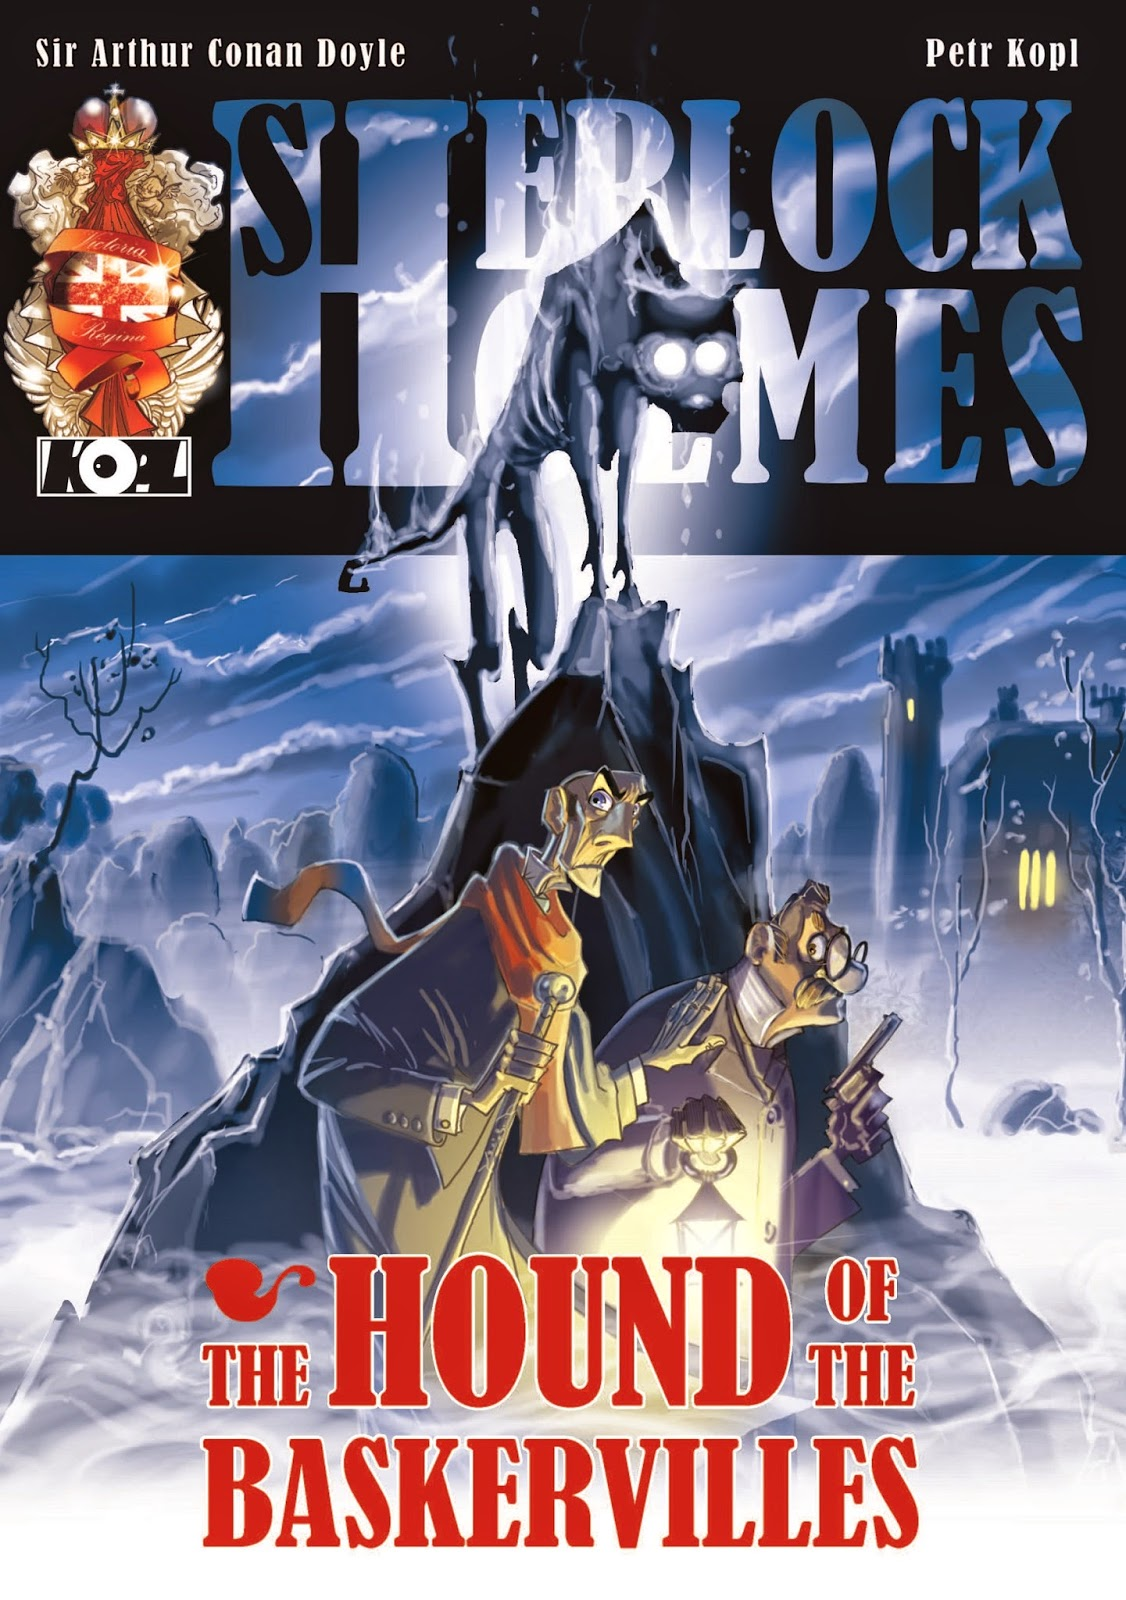 The Hound of The Baskervilles – A Sherlock Holmes Graphic Novel